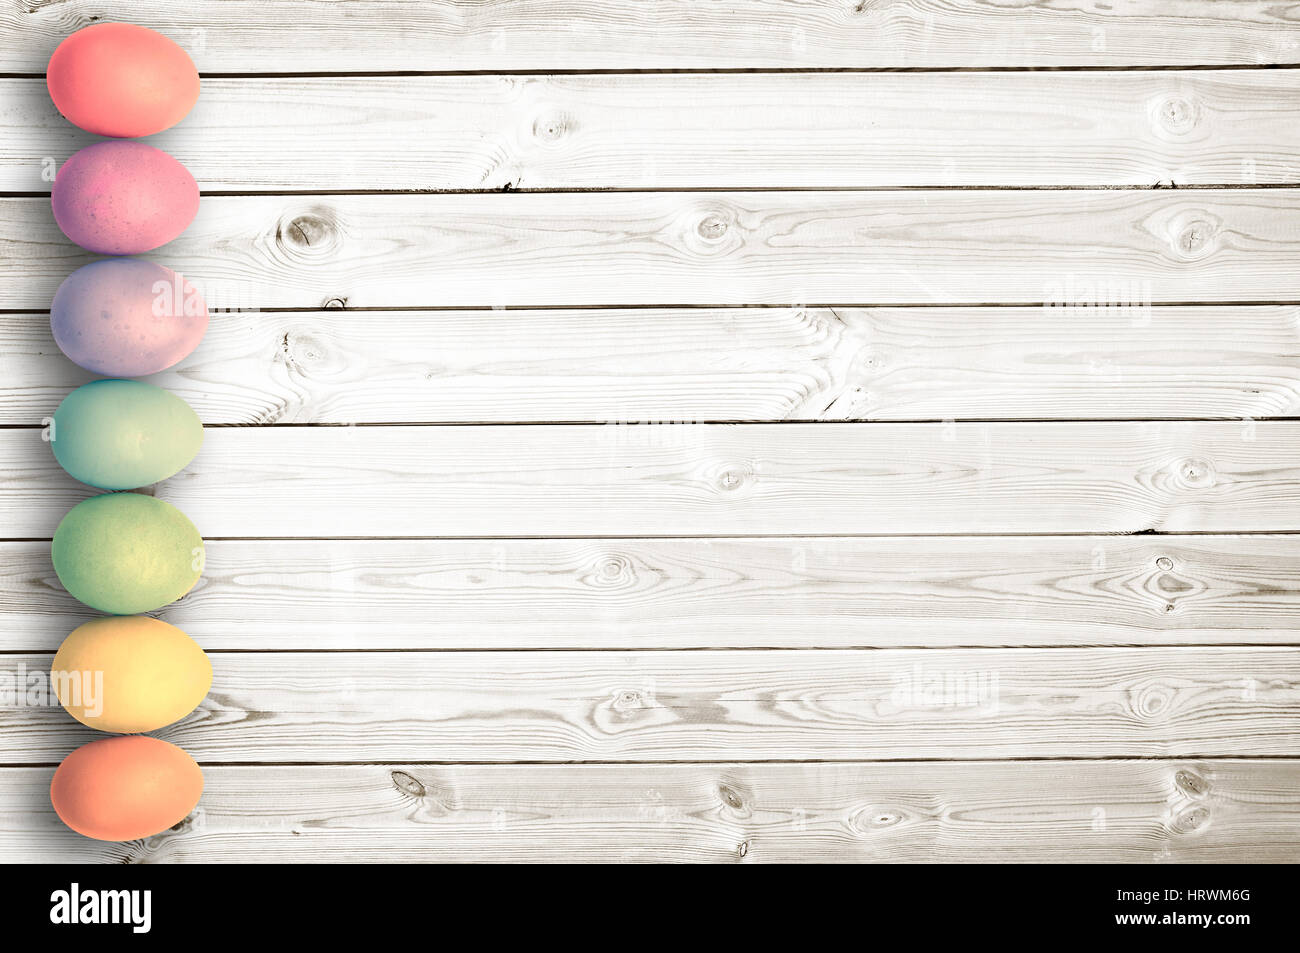 Pastel colored eggs on white wooden planks, easter background - Stock Image